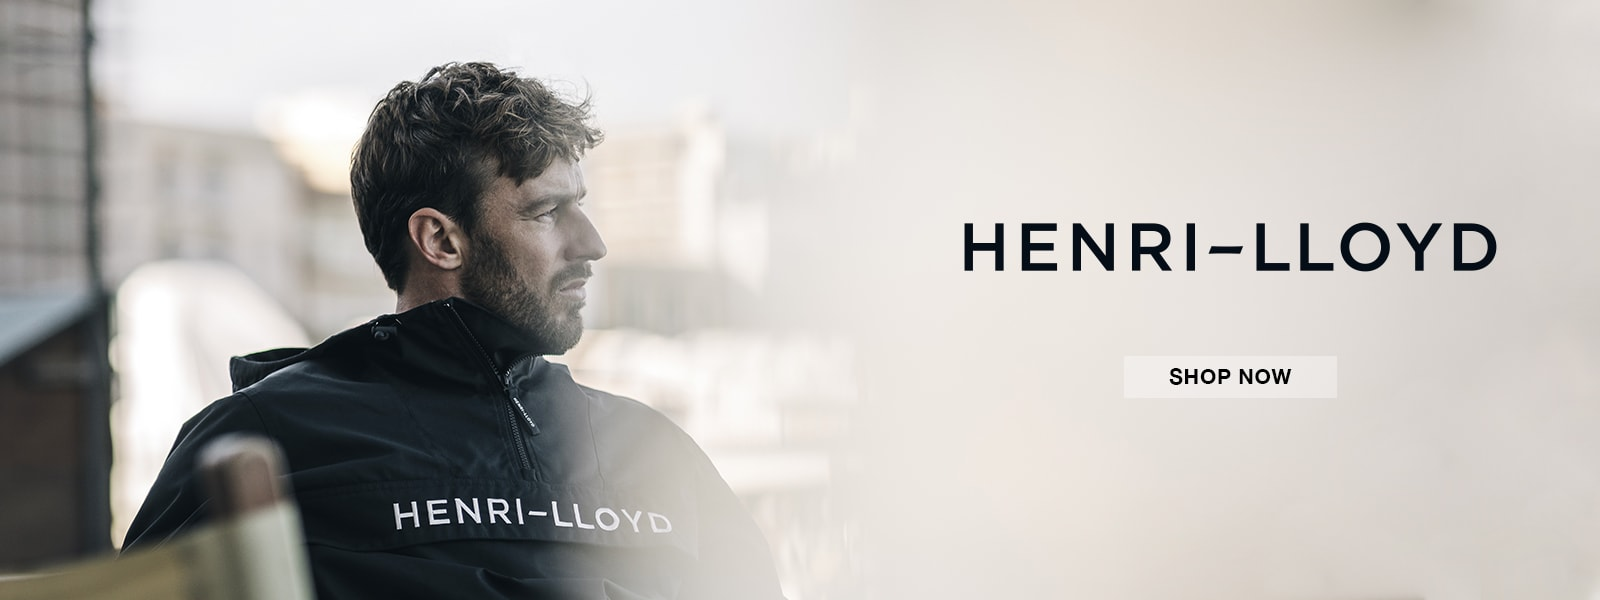 Henri Lloyd - Discover the Latest Collection Now